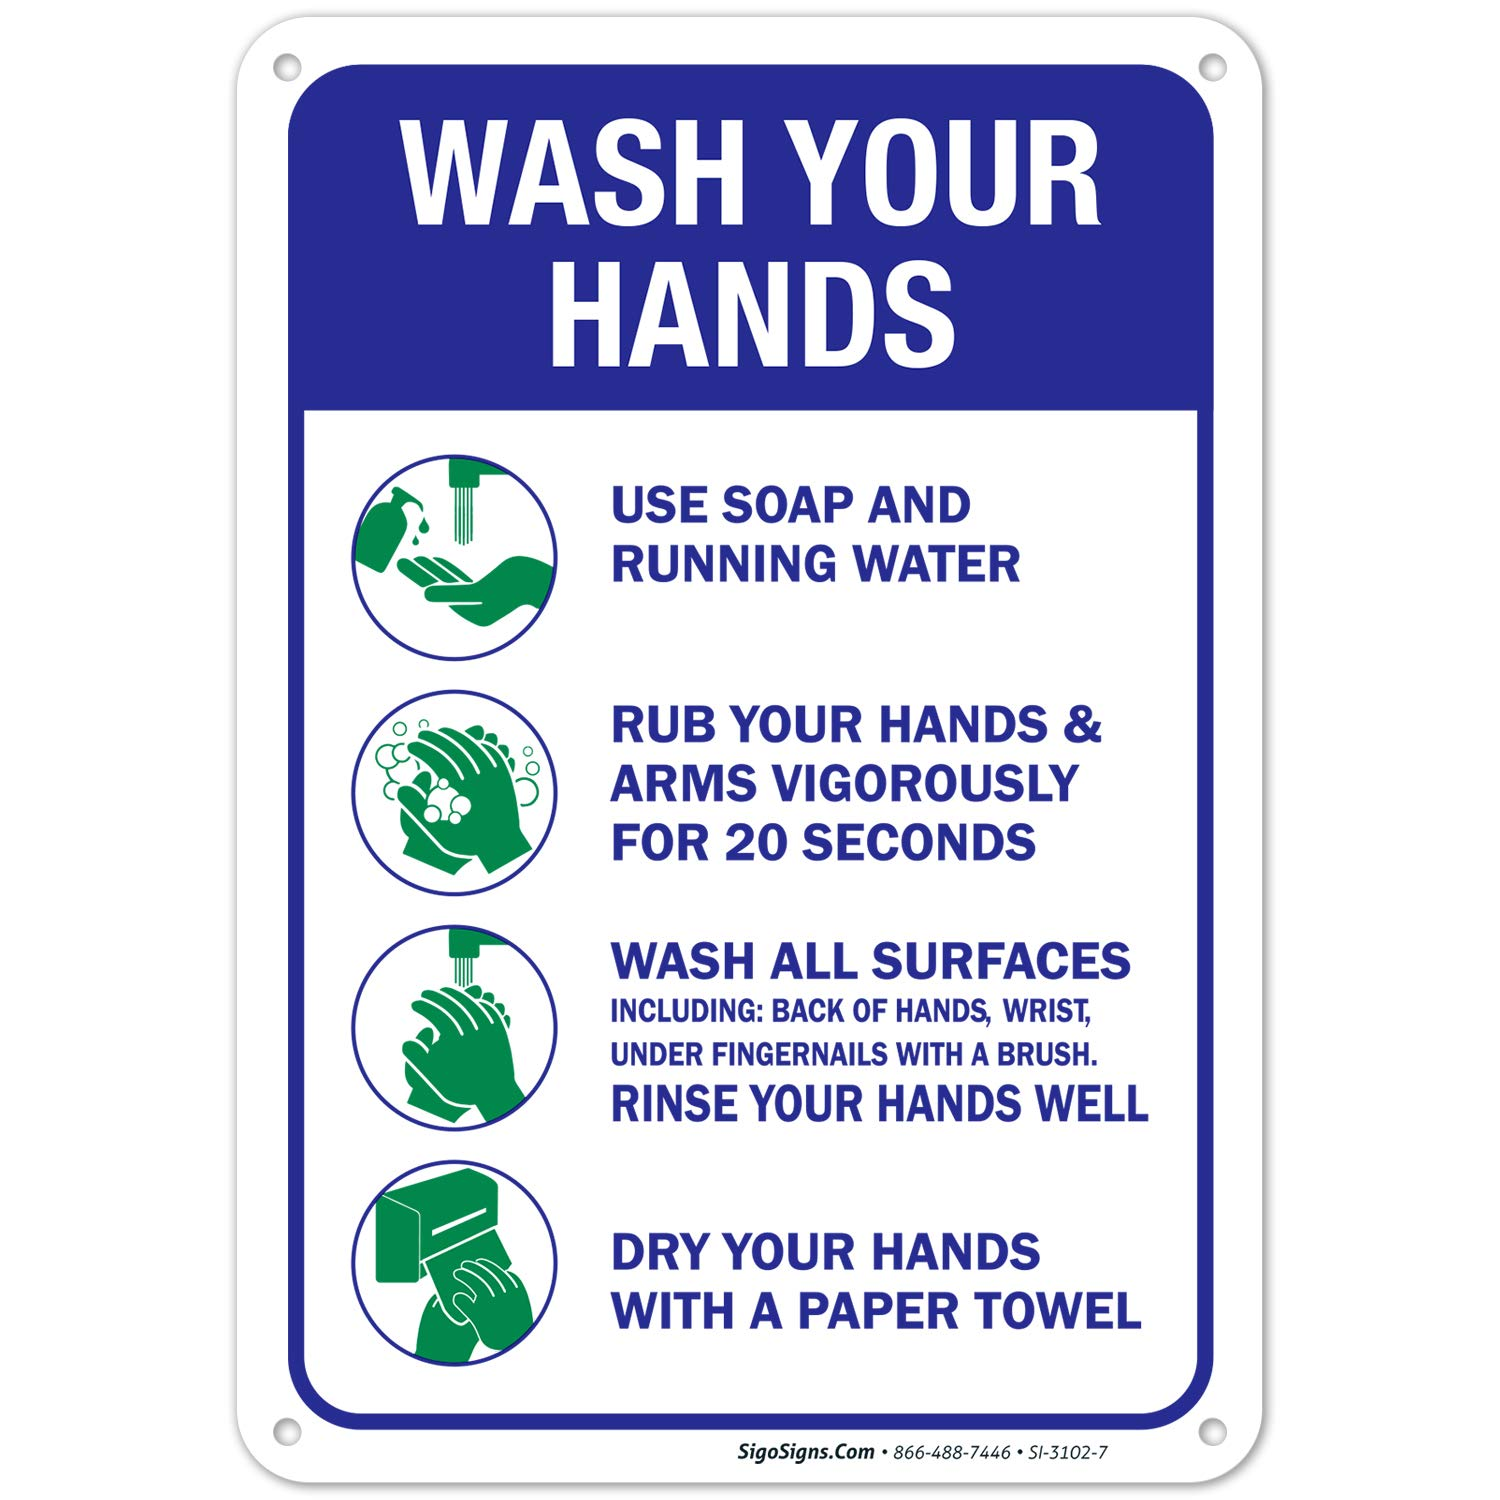 Hand Washing Sign, 10x7 Inches, Handwashing Instruction Sign, Rust Free 0.40 Aluminum, Fade Resistant, Easy Mounting, Indoor/Outdoor Use, Made in USA by Sigo Signs